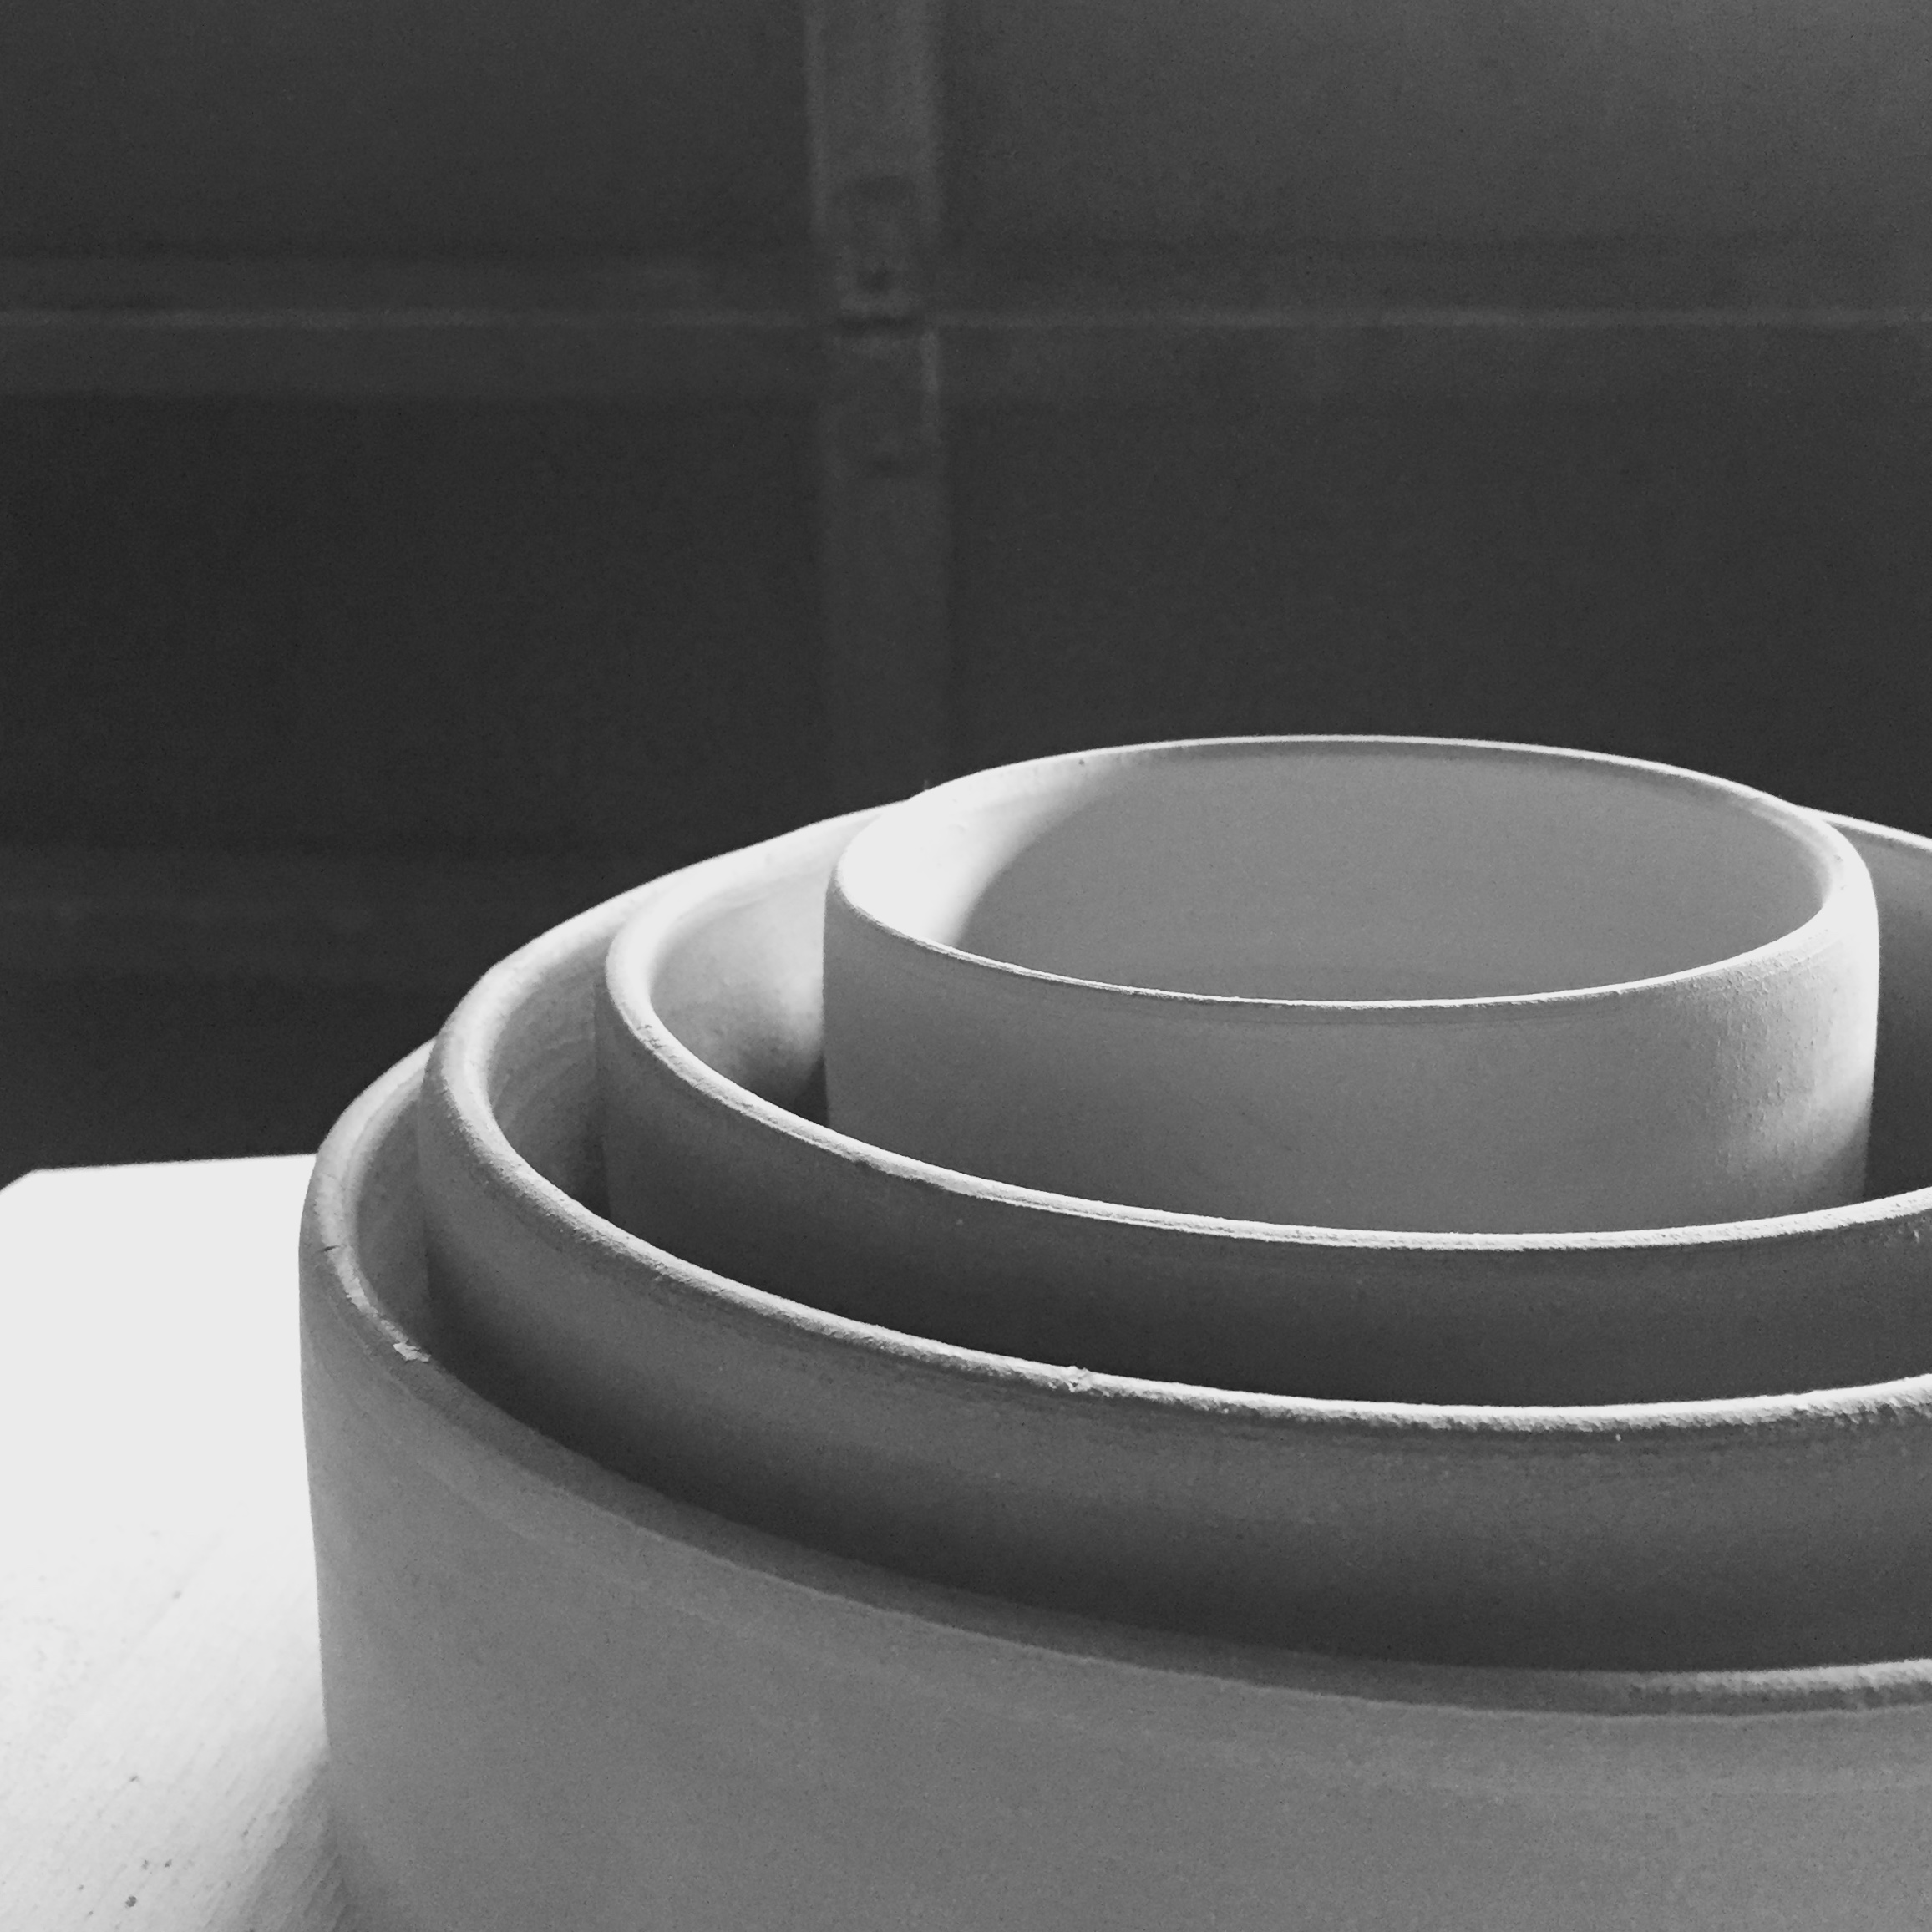 Some nesting bowls.  Just because.